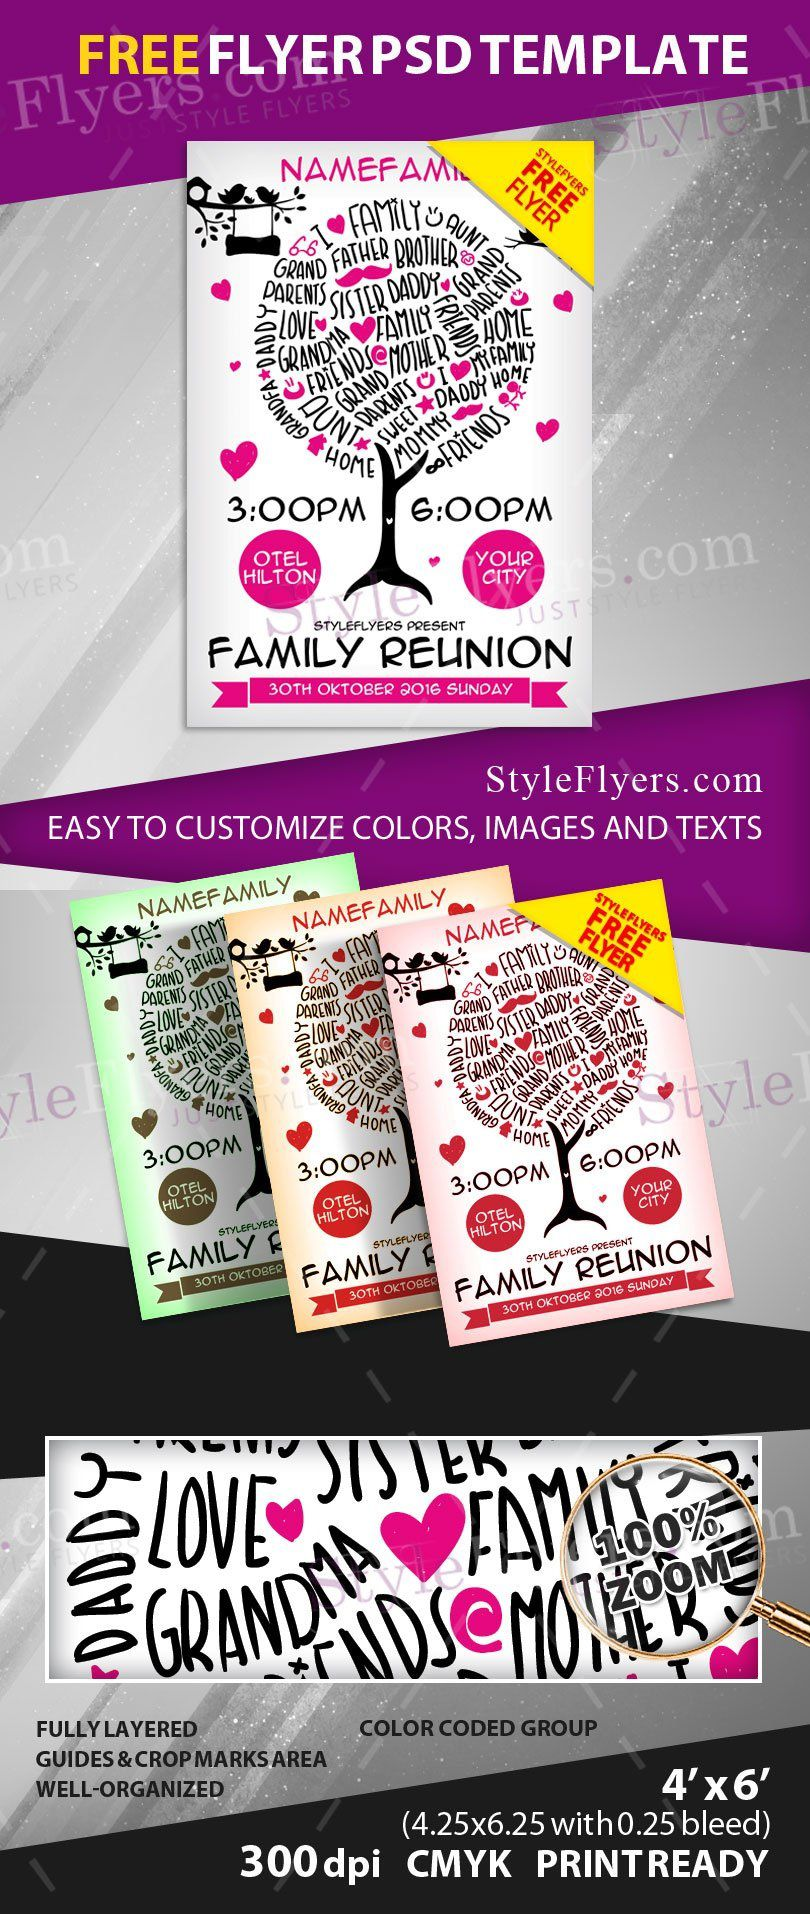 009 Unbelievable Family Reunion Flyer Template Inspiration  Templates Free ForFull